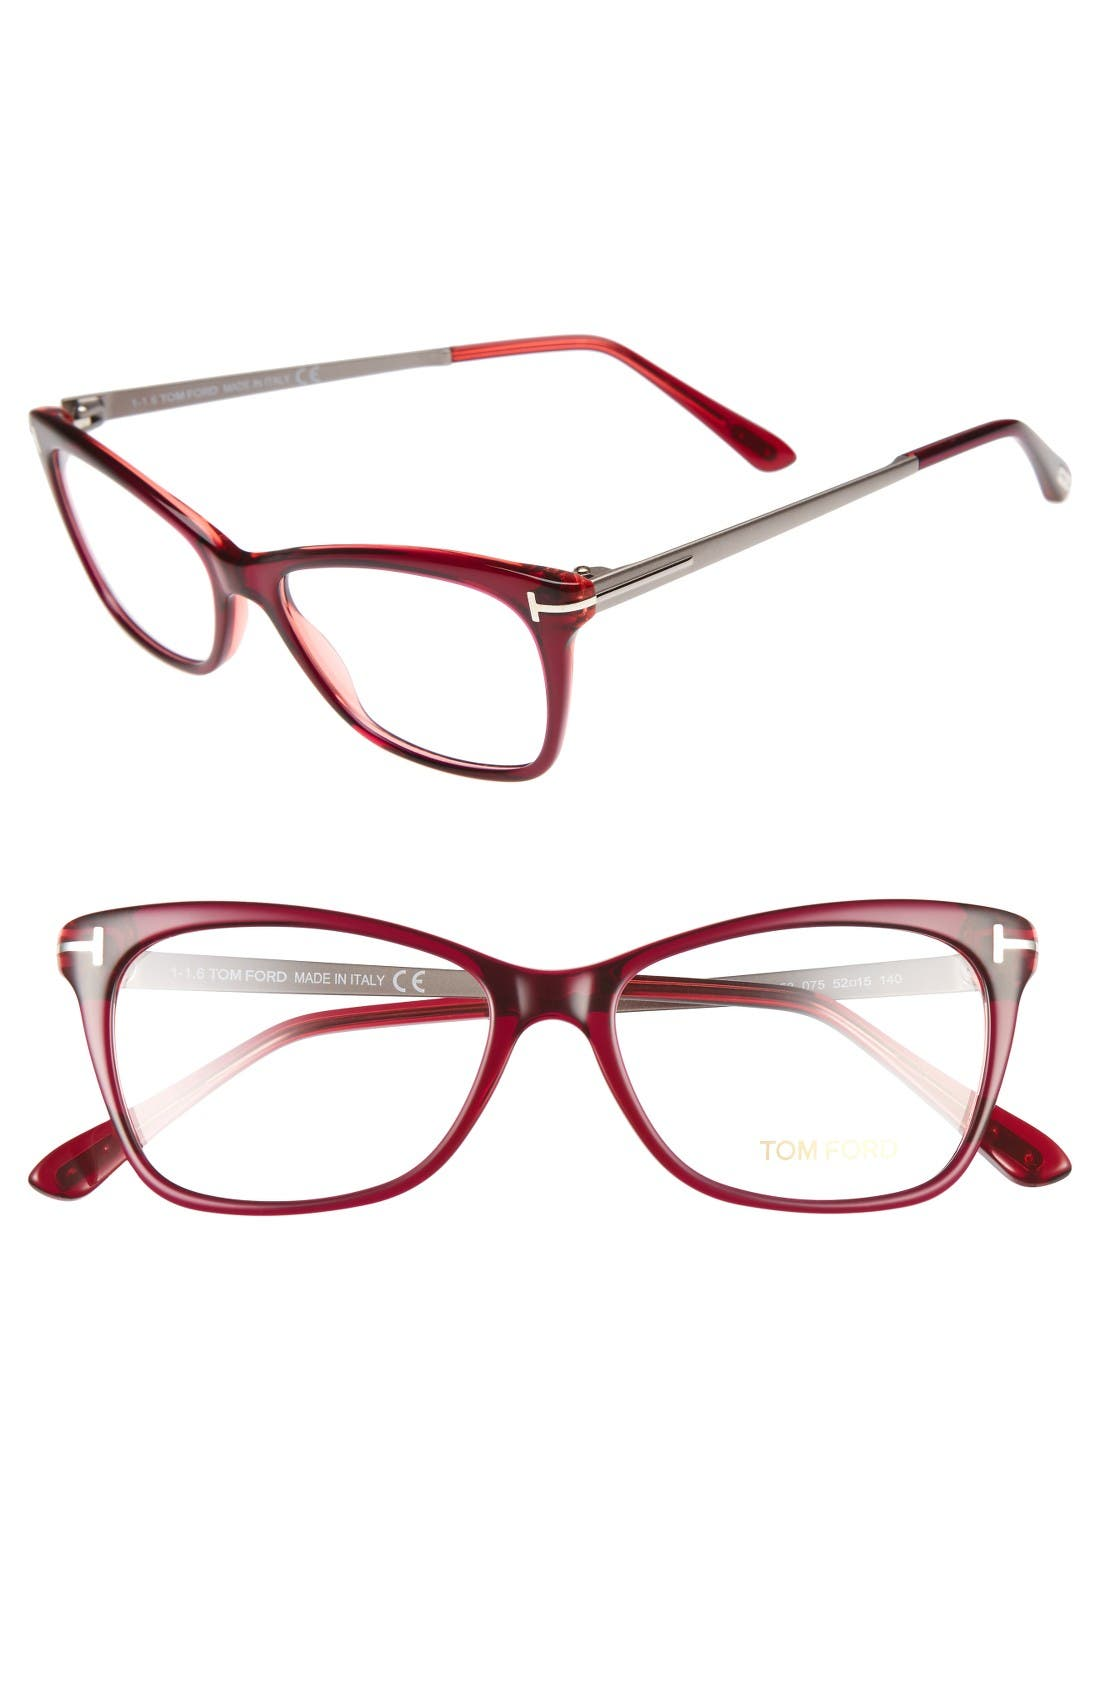 Main Image - Tom Ford 52mm Cat Eye Optical Glasses